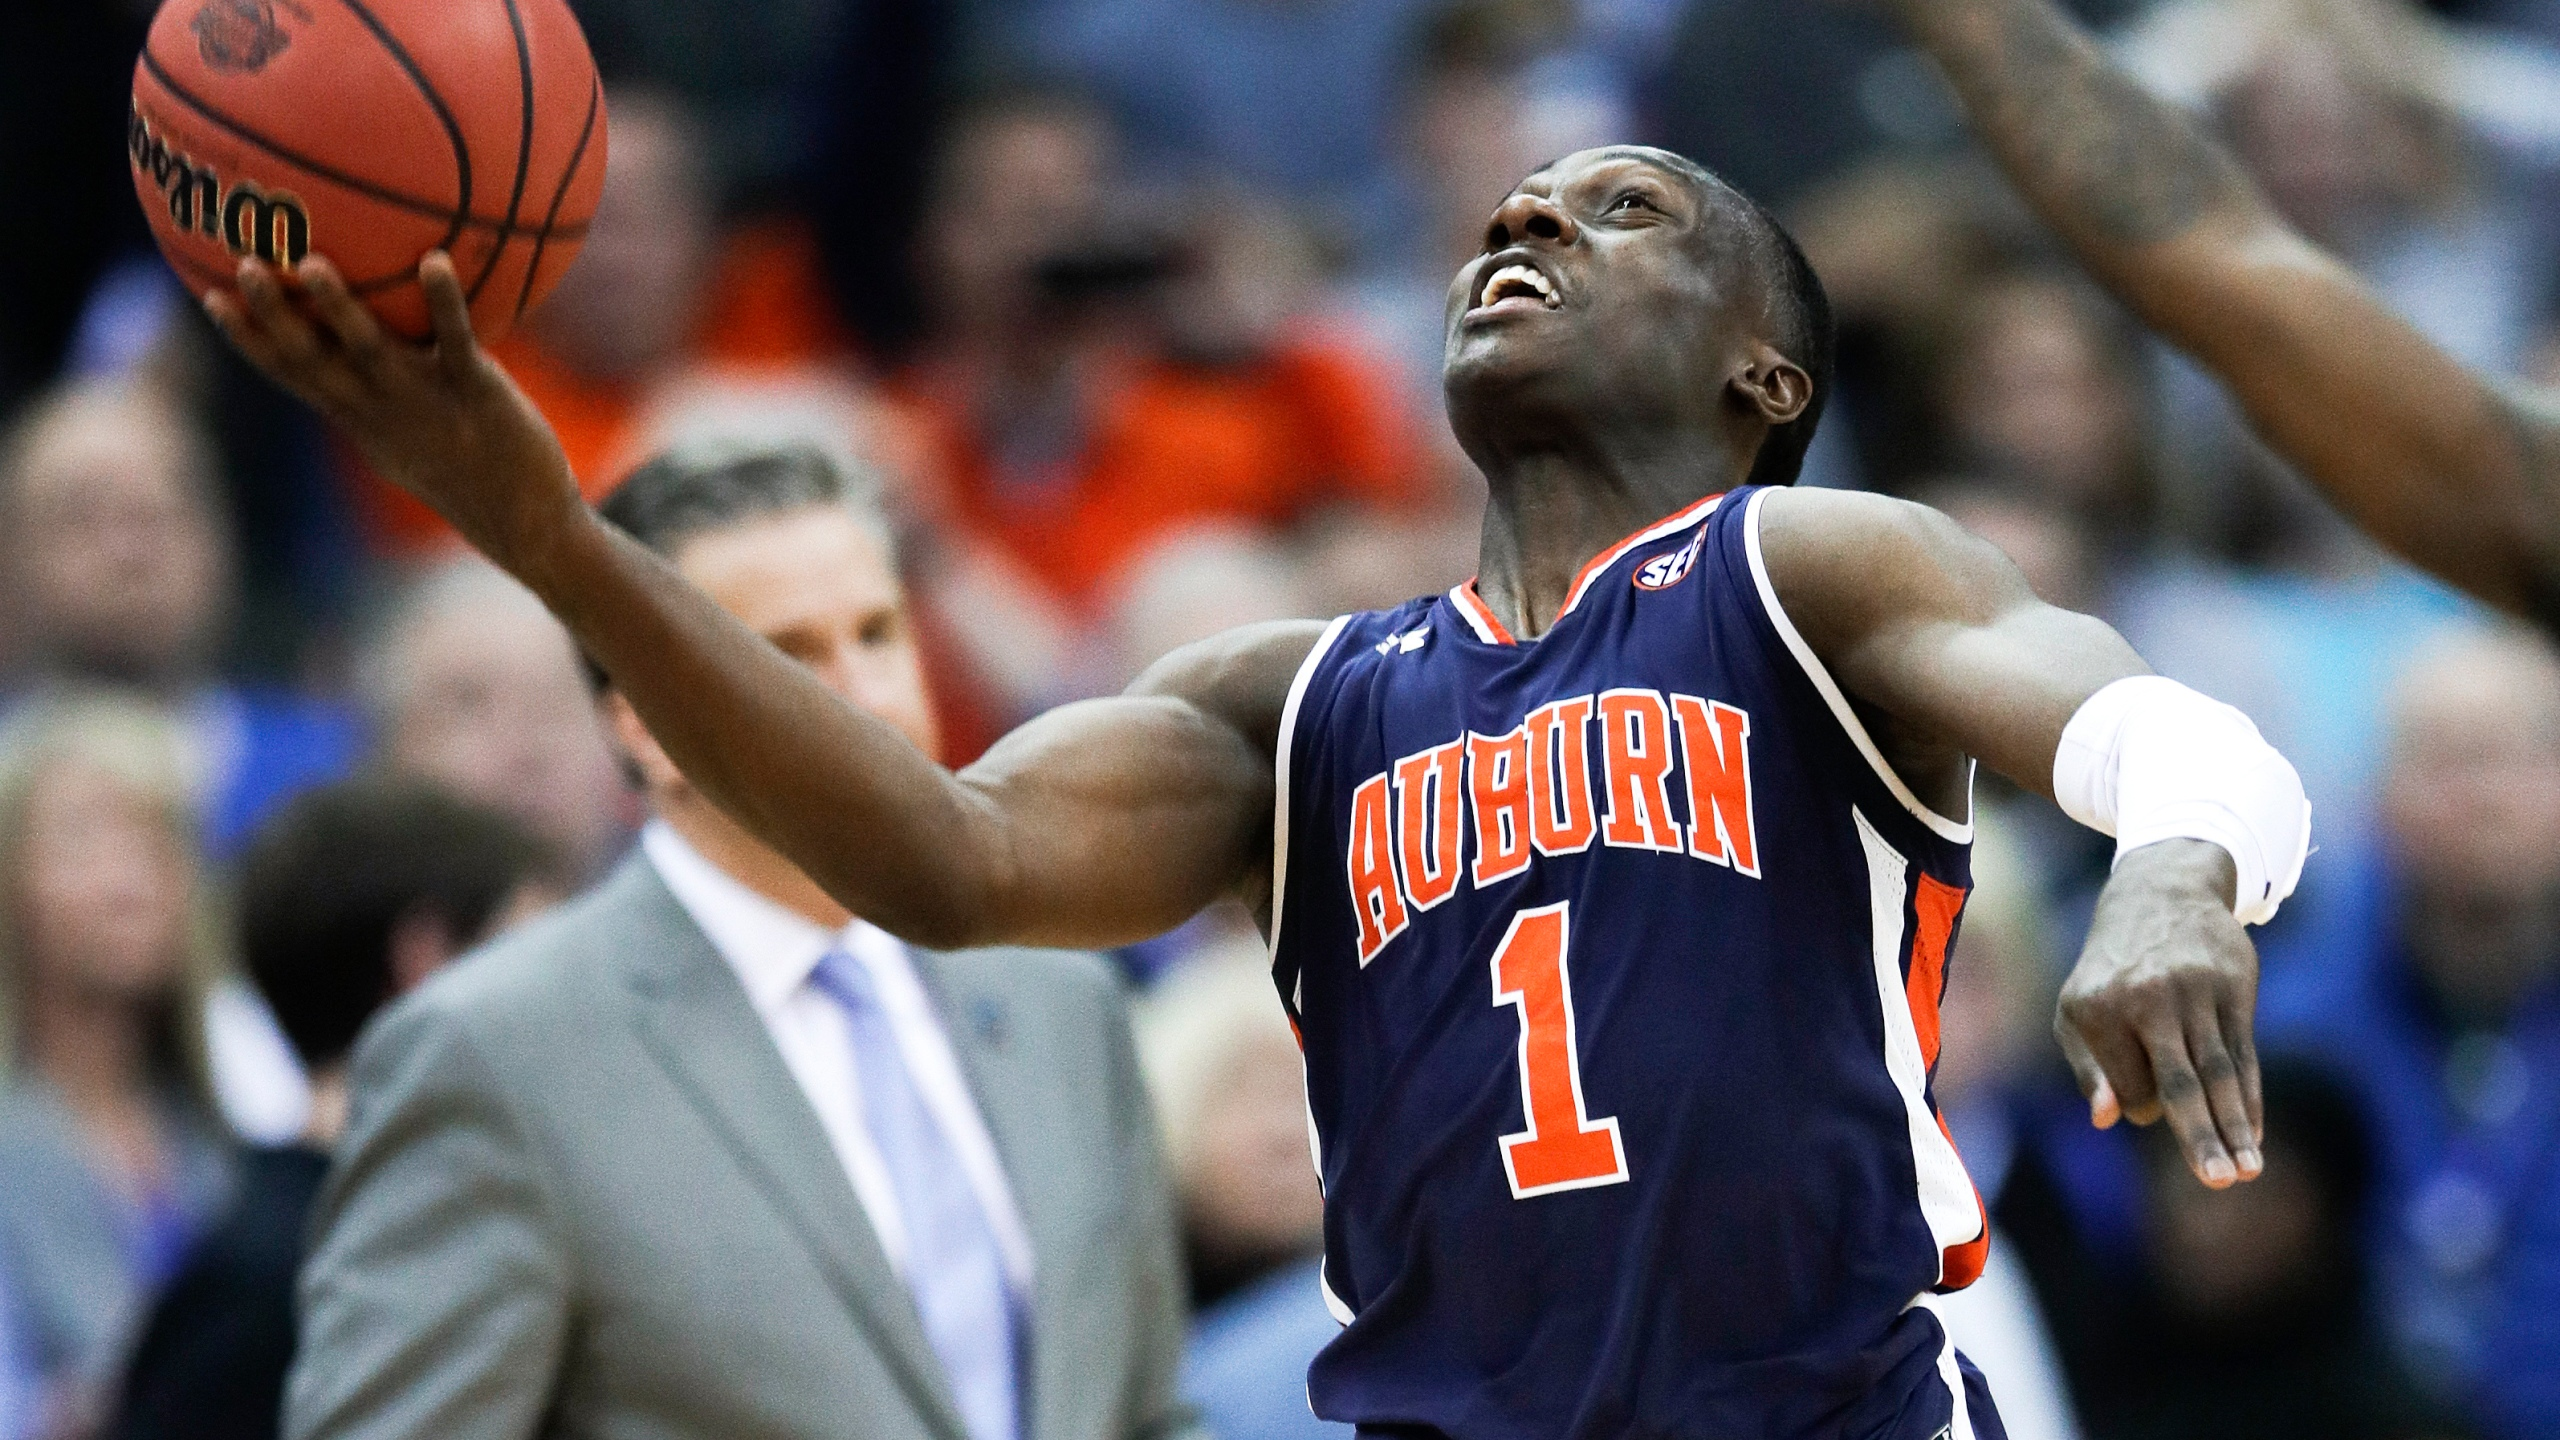 APTOPIX_NCAA_Auburn_Kentucky_Basketball_30109-159532.jpg74493041